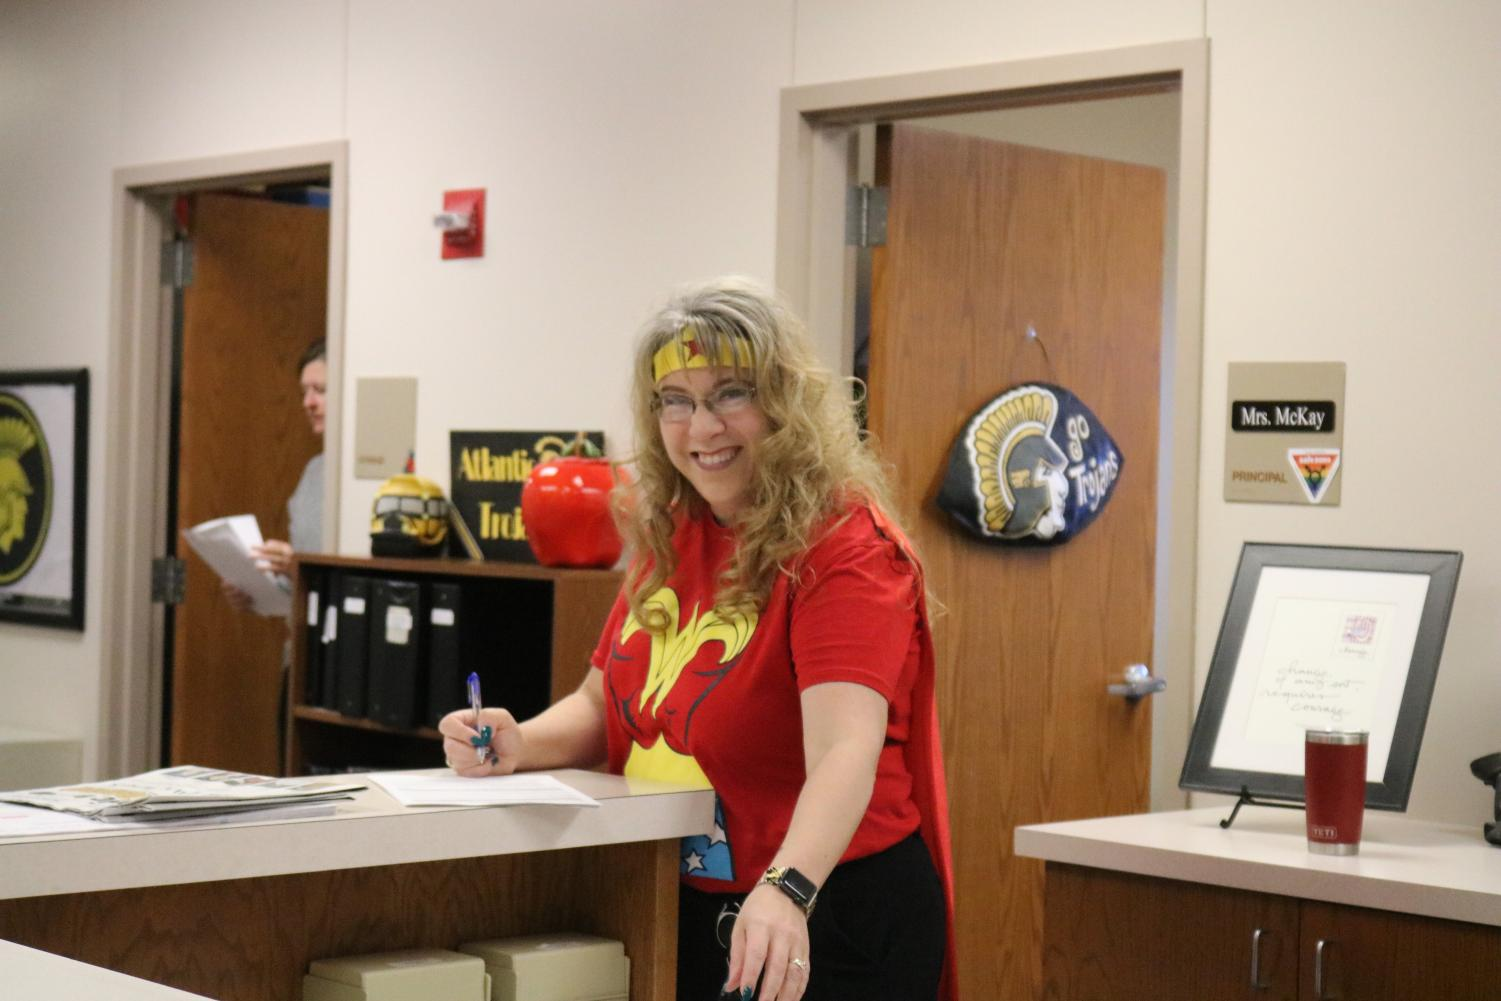 WONDER WOMAN --  Principal Heather McKay wears a cape to complete her Wonder Woman costume. McKay's love for Wonder Woman doesn't stop at her attire. Artwork and knick knacks of the superhero can be found all over her office.